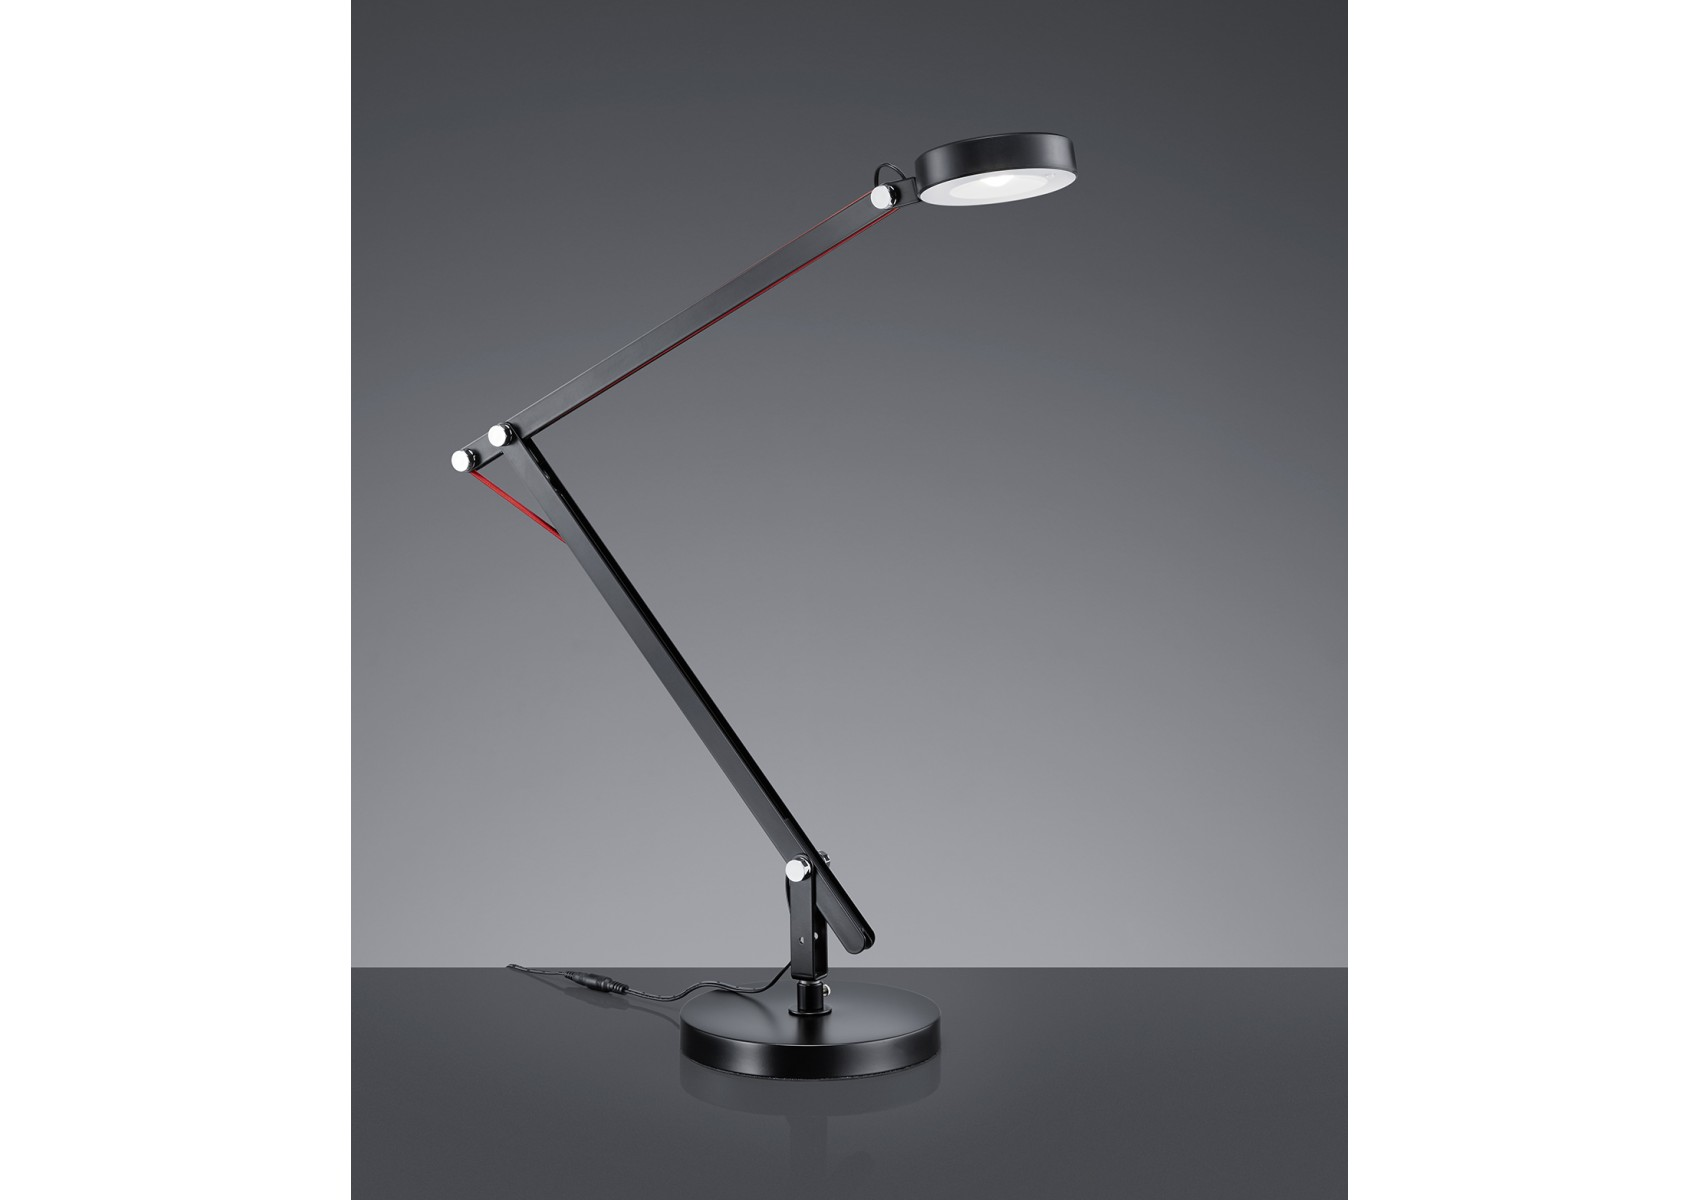 lampe de bureau amsterdam led avec trois fixations possibles. Black Bedroom Furniture Sets. Home Design Ideas